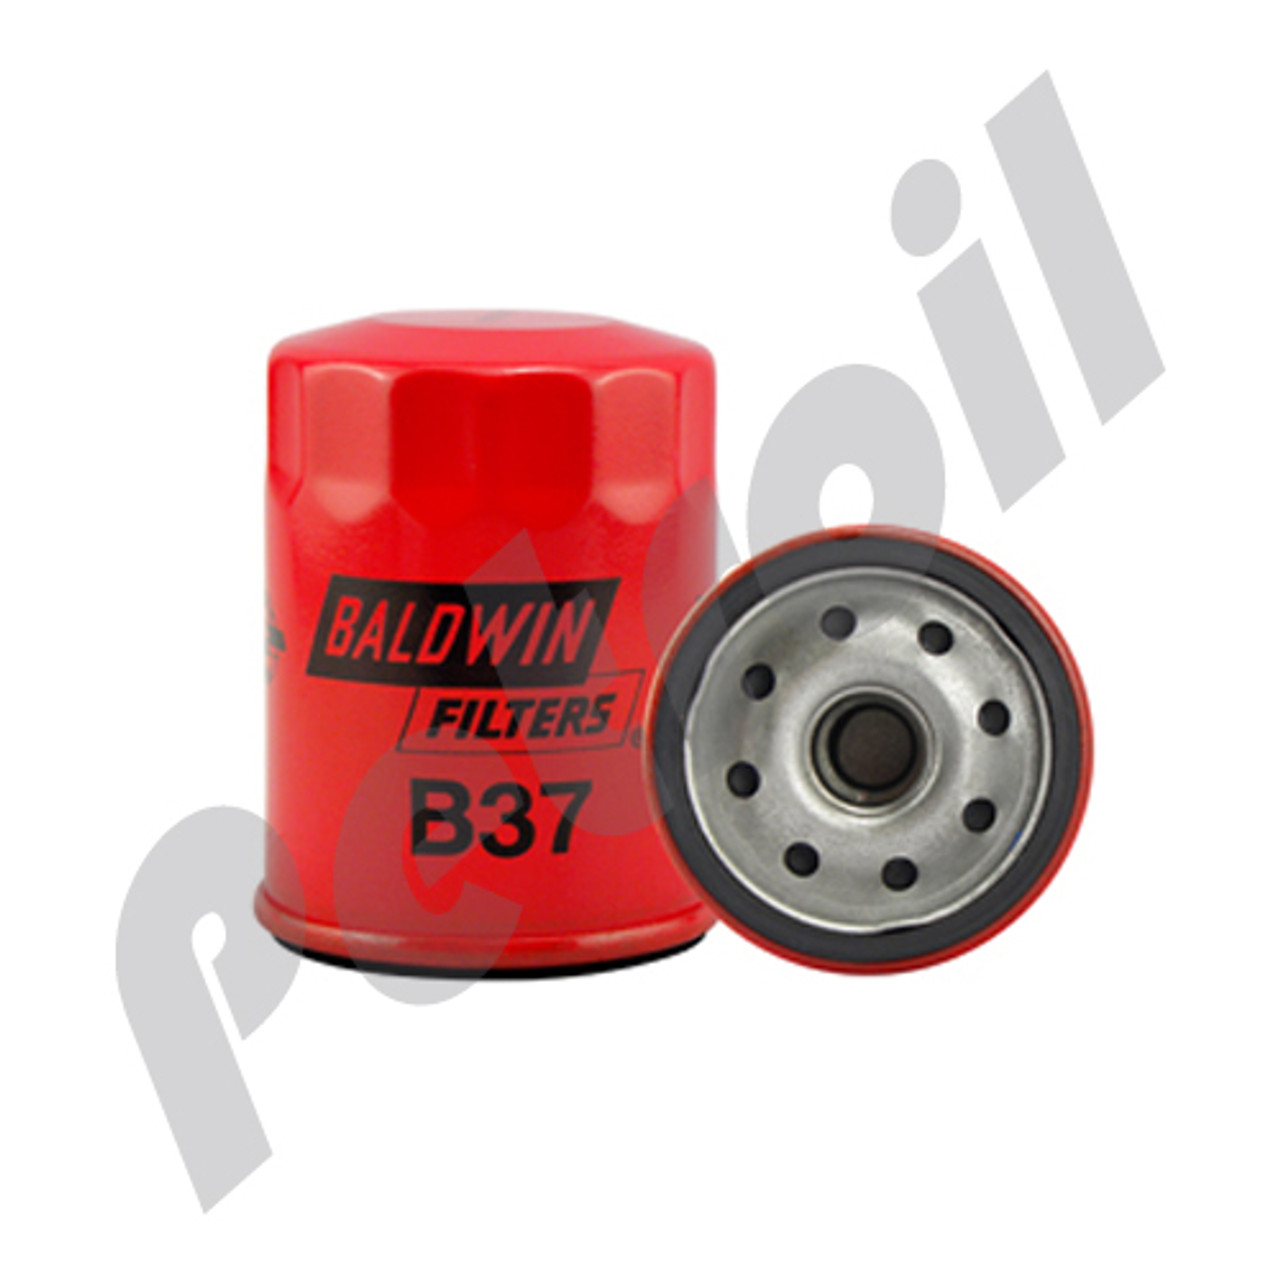 (Case of 12) B37 Baldwin AUTOMOTIVE LUBE SPIN-ON